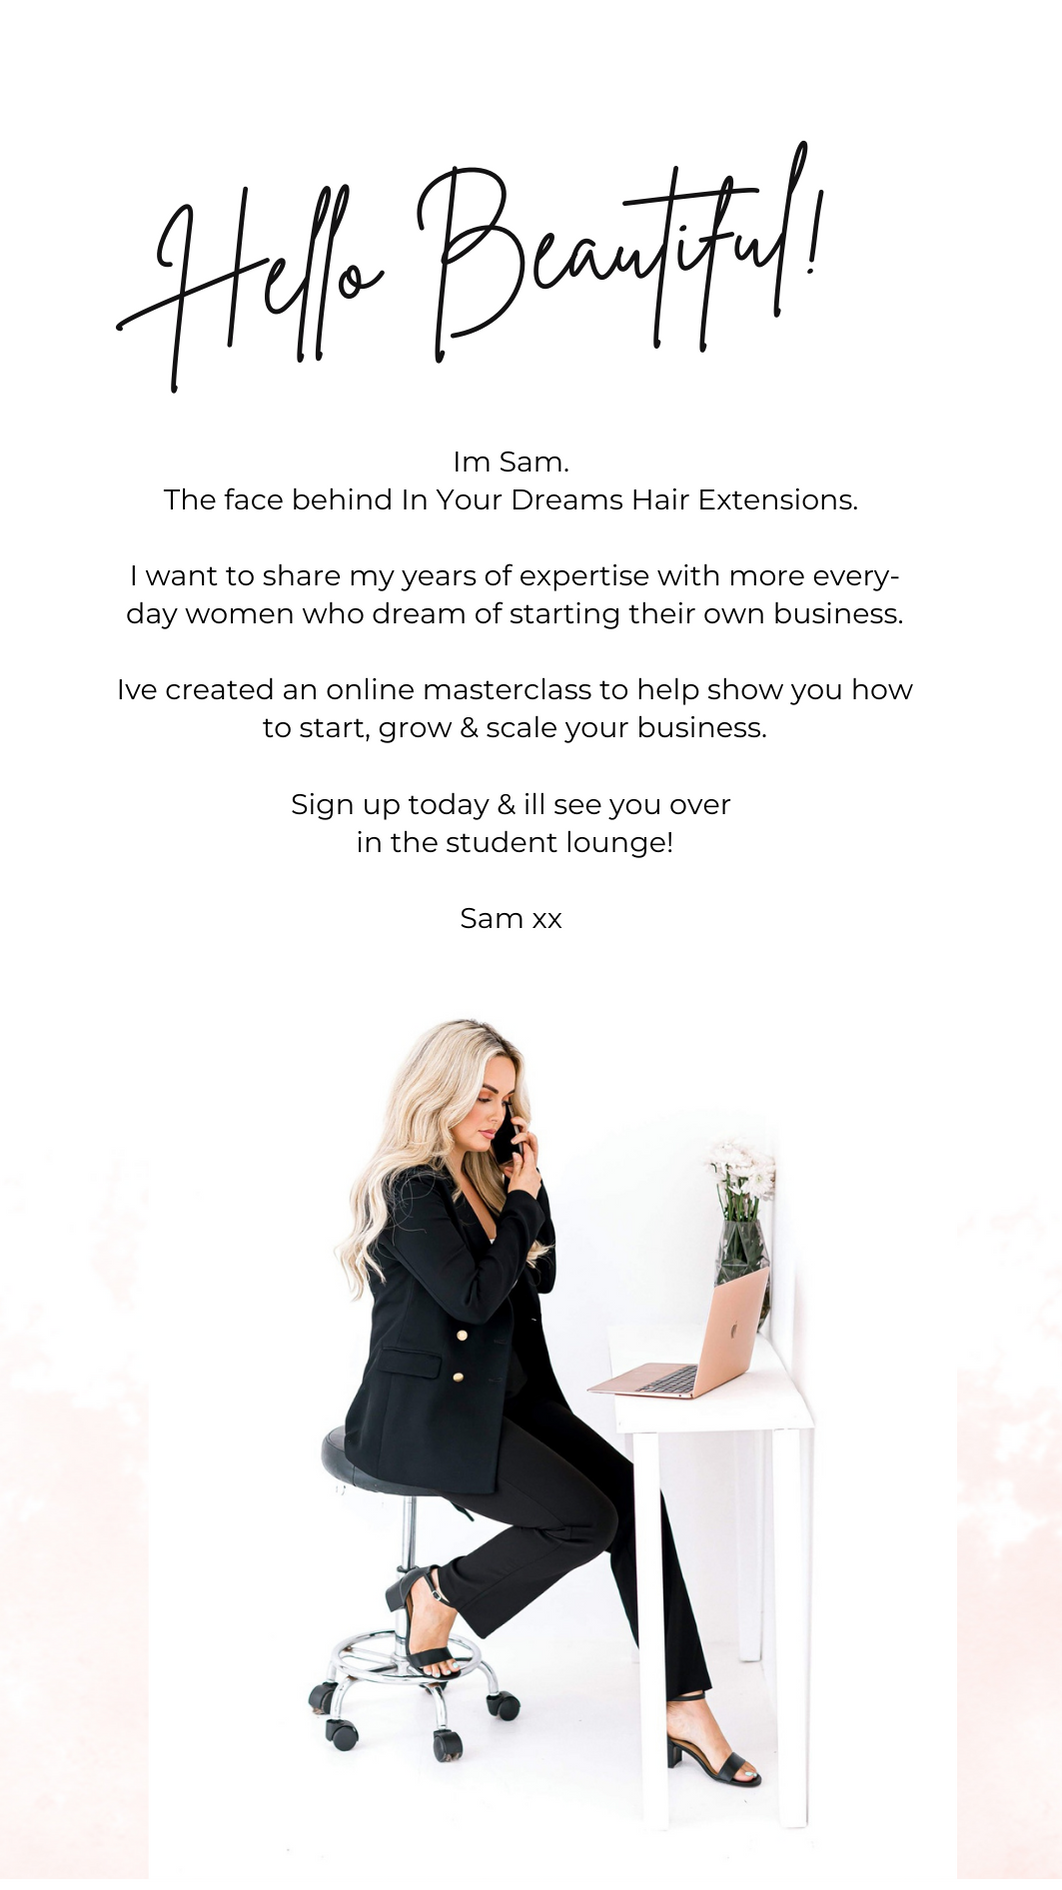 hair extensions afterpay, hair extensions Brisbane, hair extension training courses,